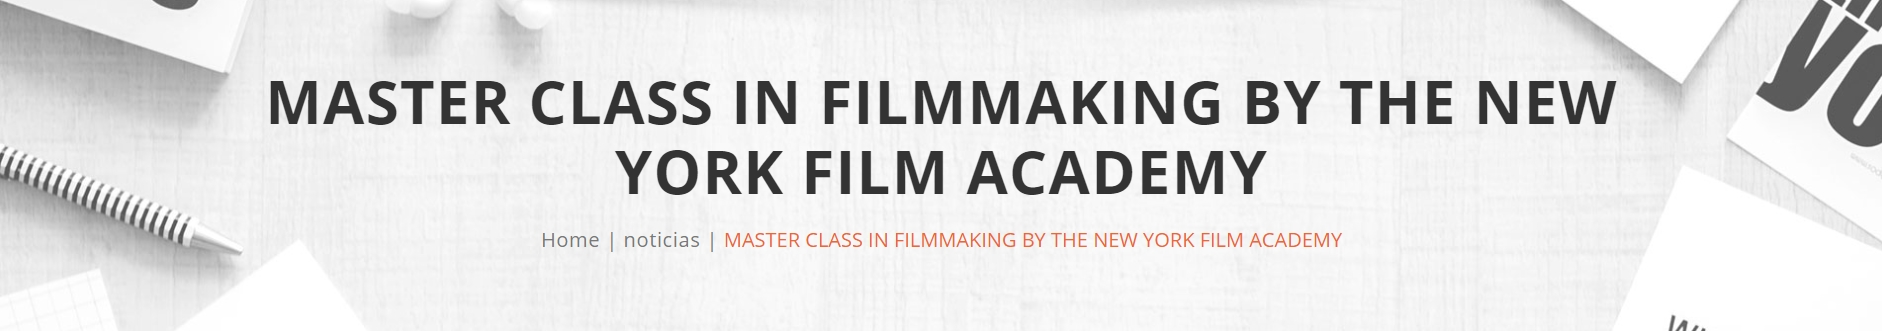 Filmmaking by The New York Film Academy